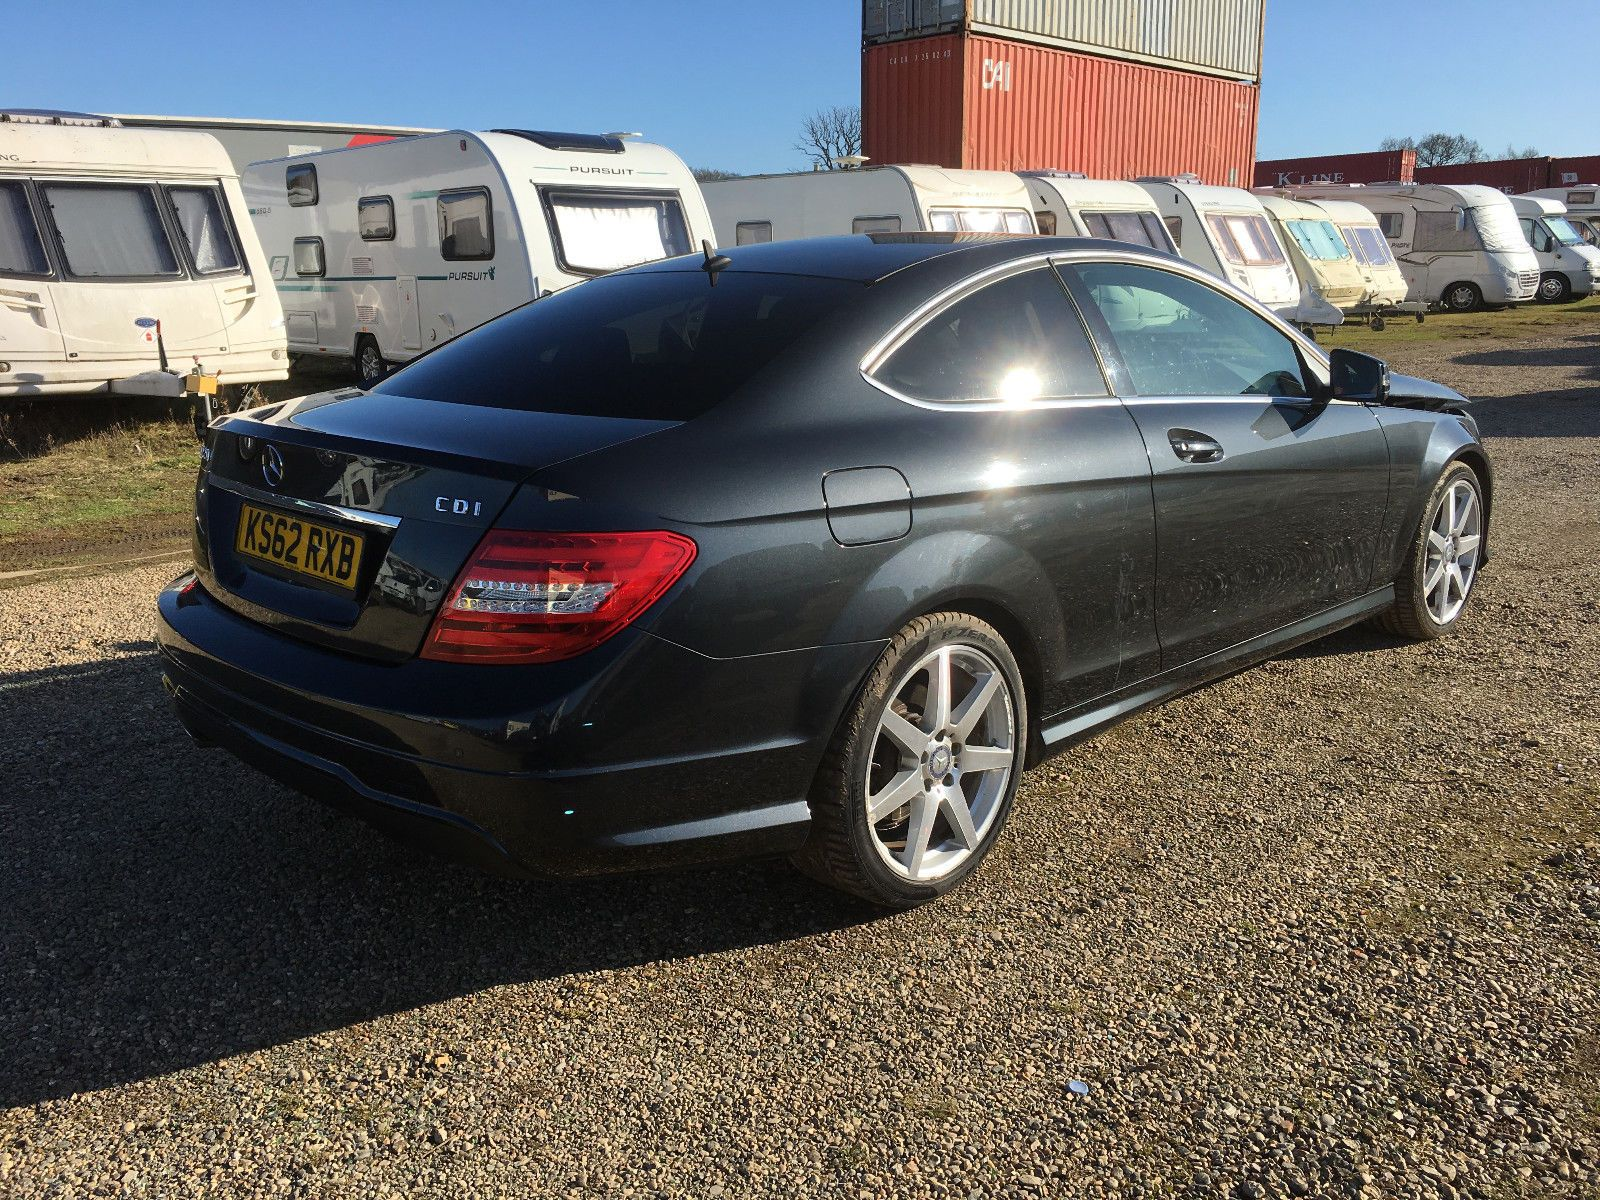 Ebay 2013 Mercedes Benz C220 Amg Automatic Diesel Sport C204 Coupe